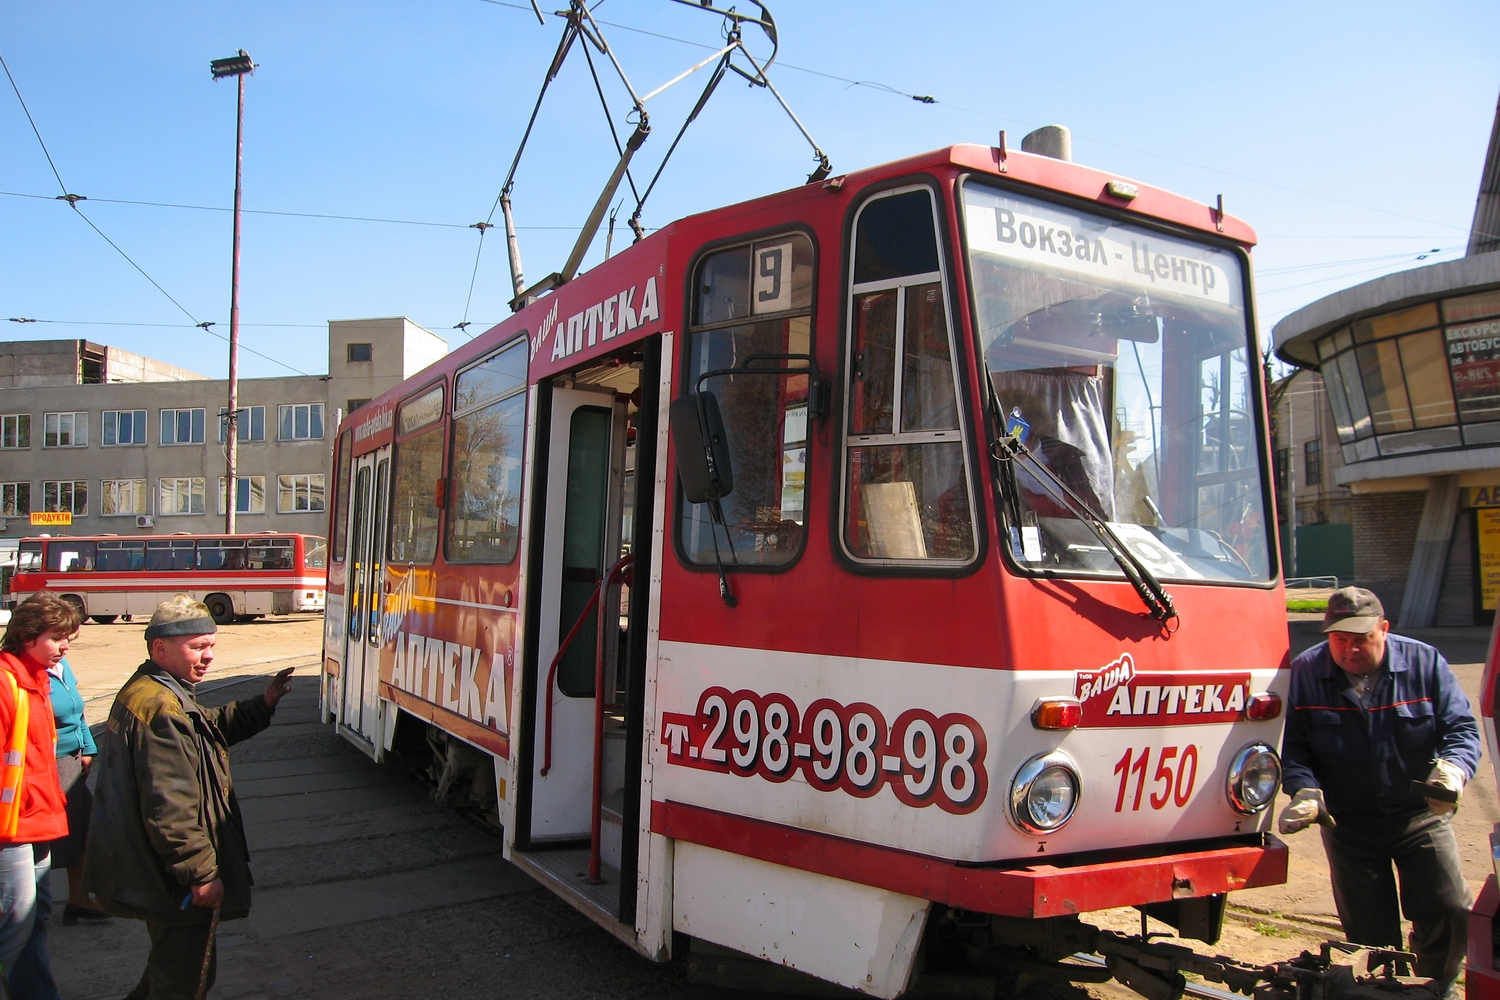 Lviv articulated tram 1150 on tram line 9 at the final destination Zaliznychnyi vokzal (2011).